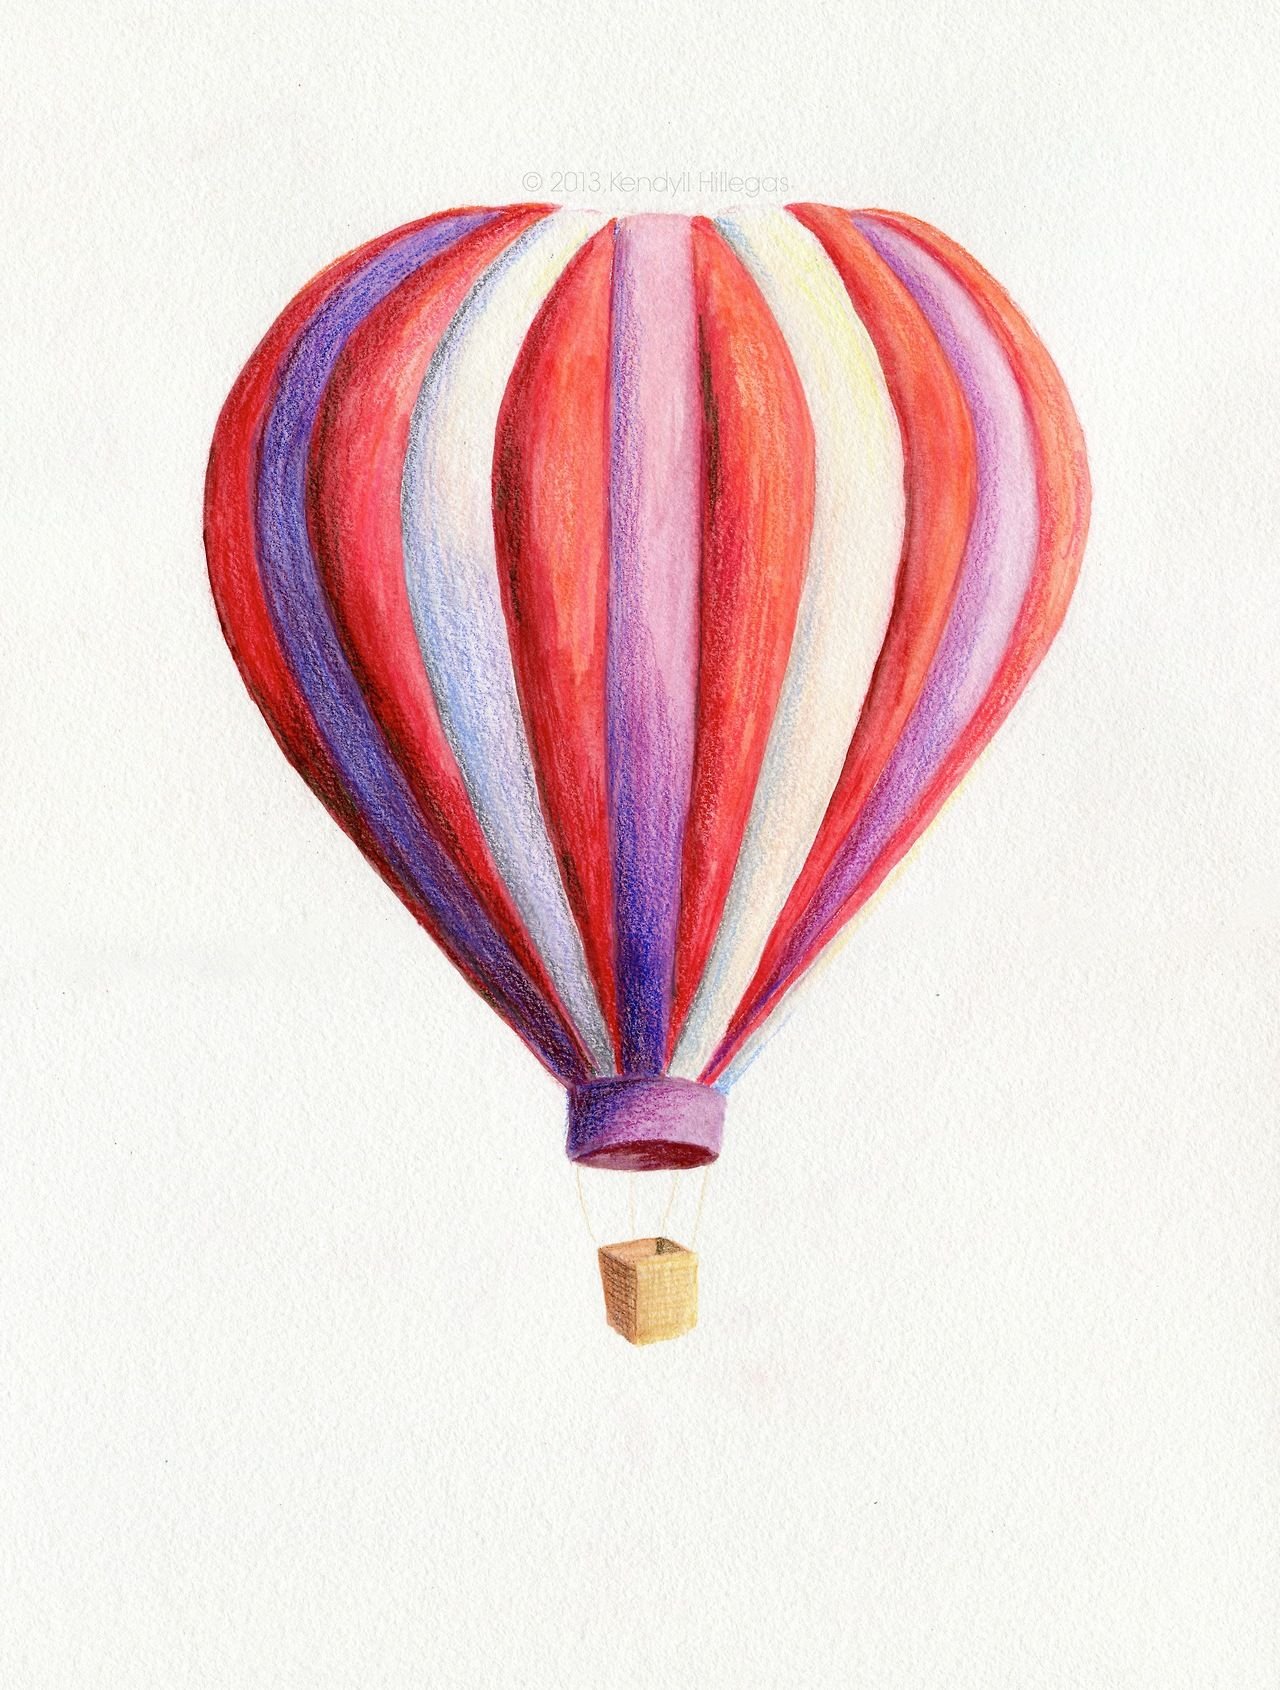 1280x1690 Red Angel Hot Air Balloon, Balloons